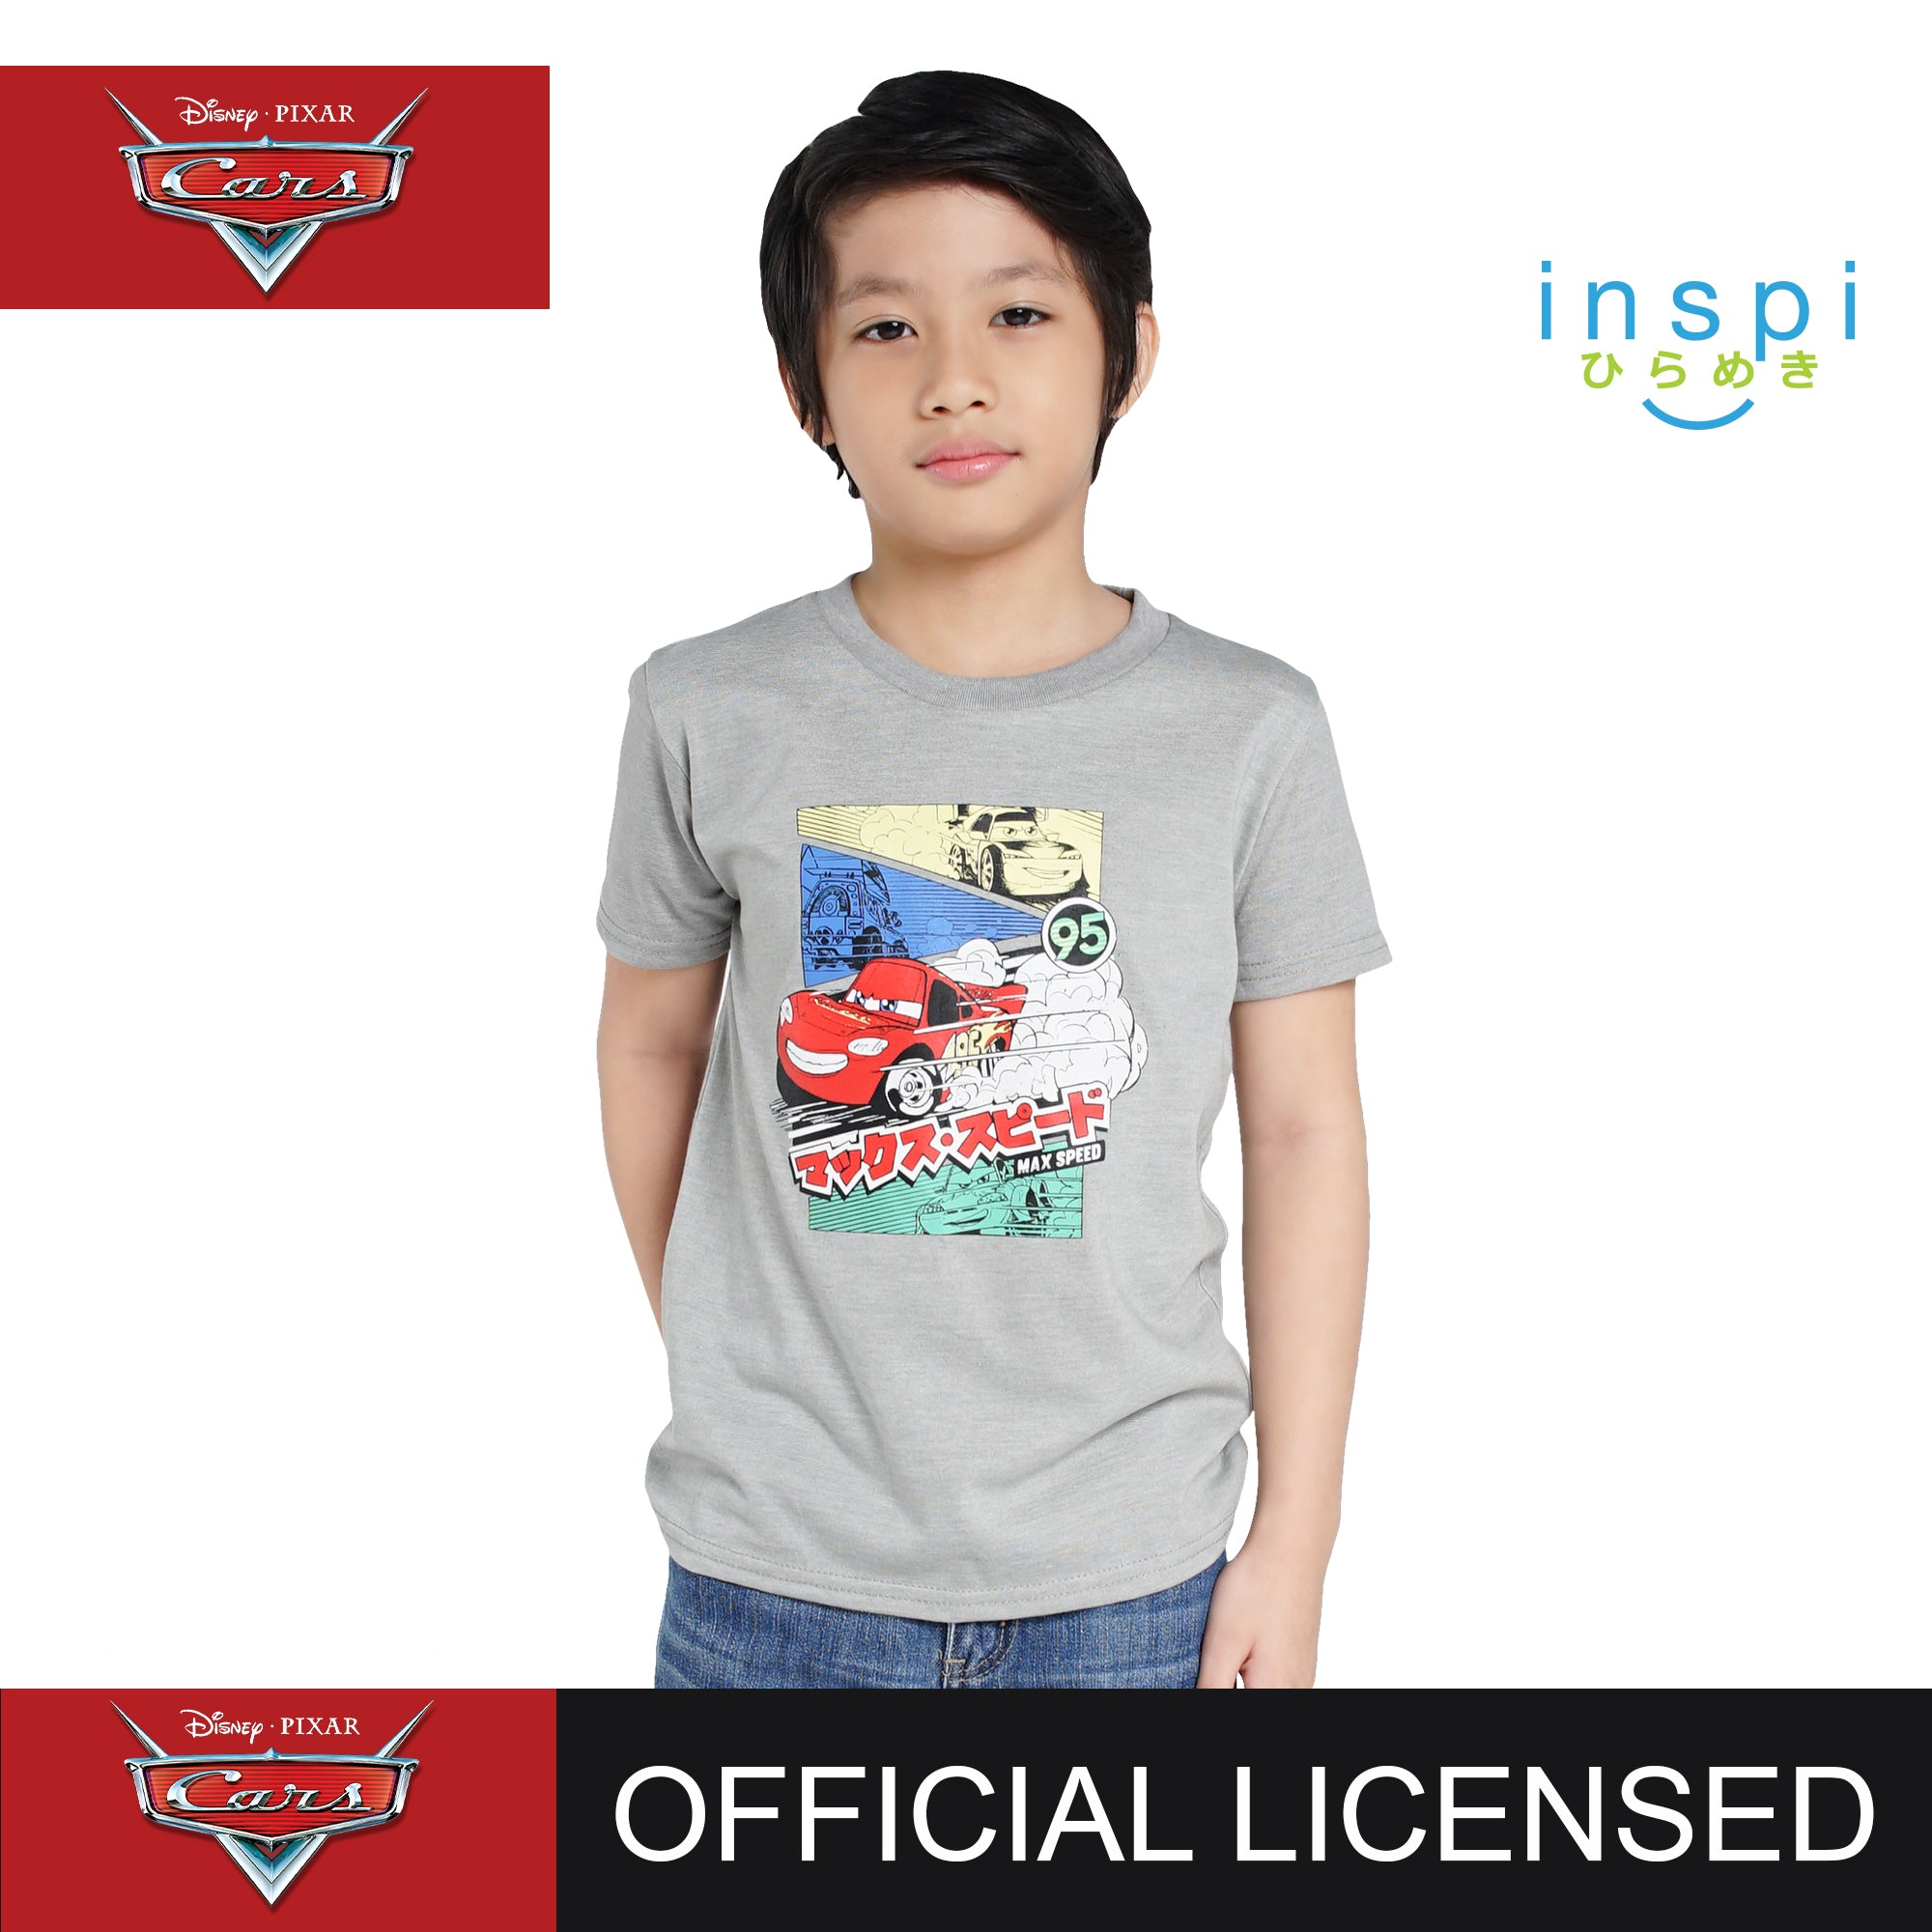 Disney Cars Max Speed Tshirt in Twill Gray for Boys Inspi Shirt